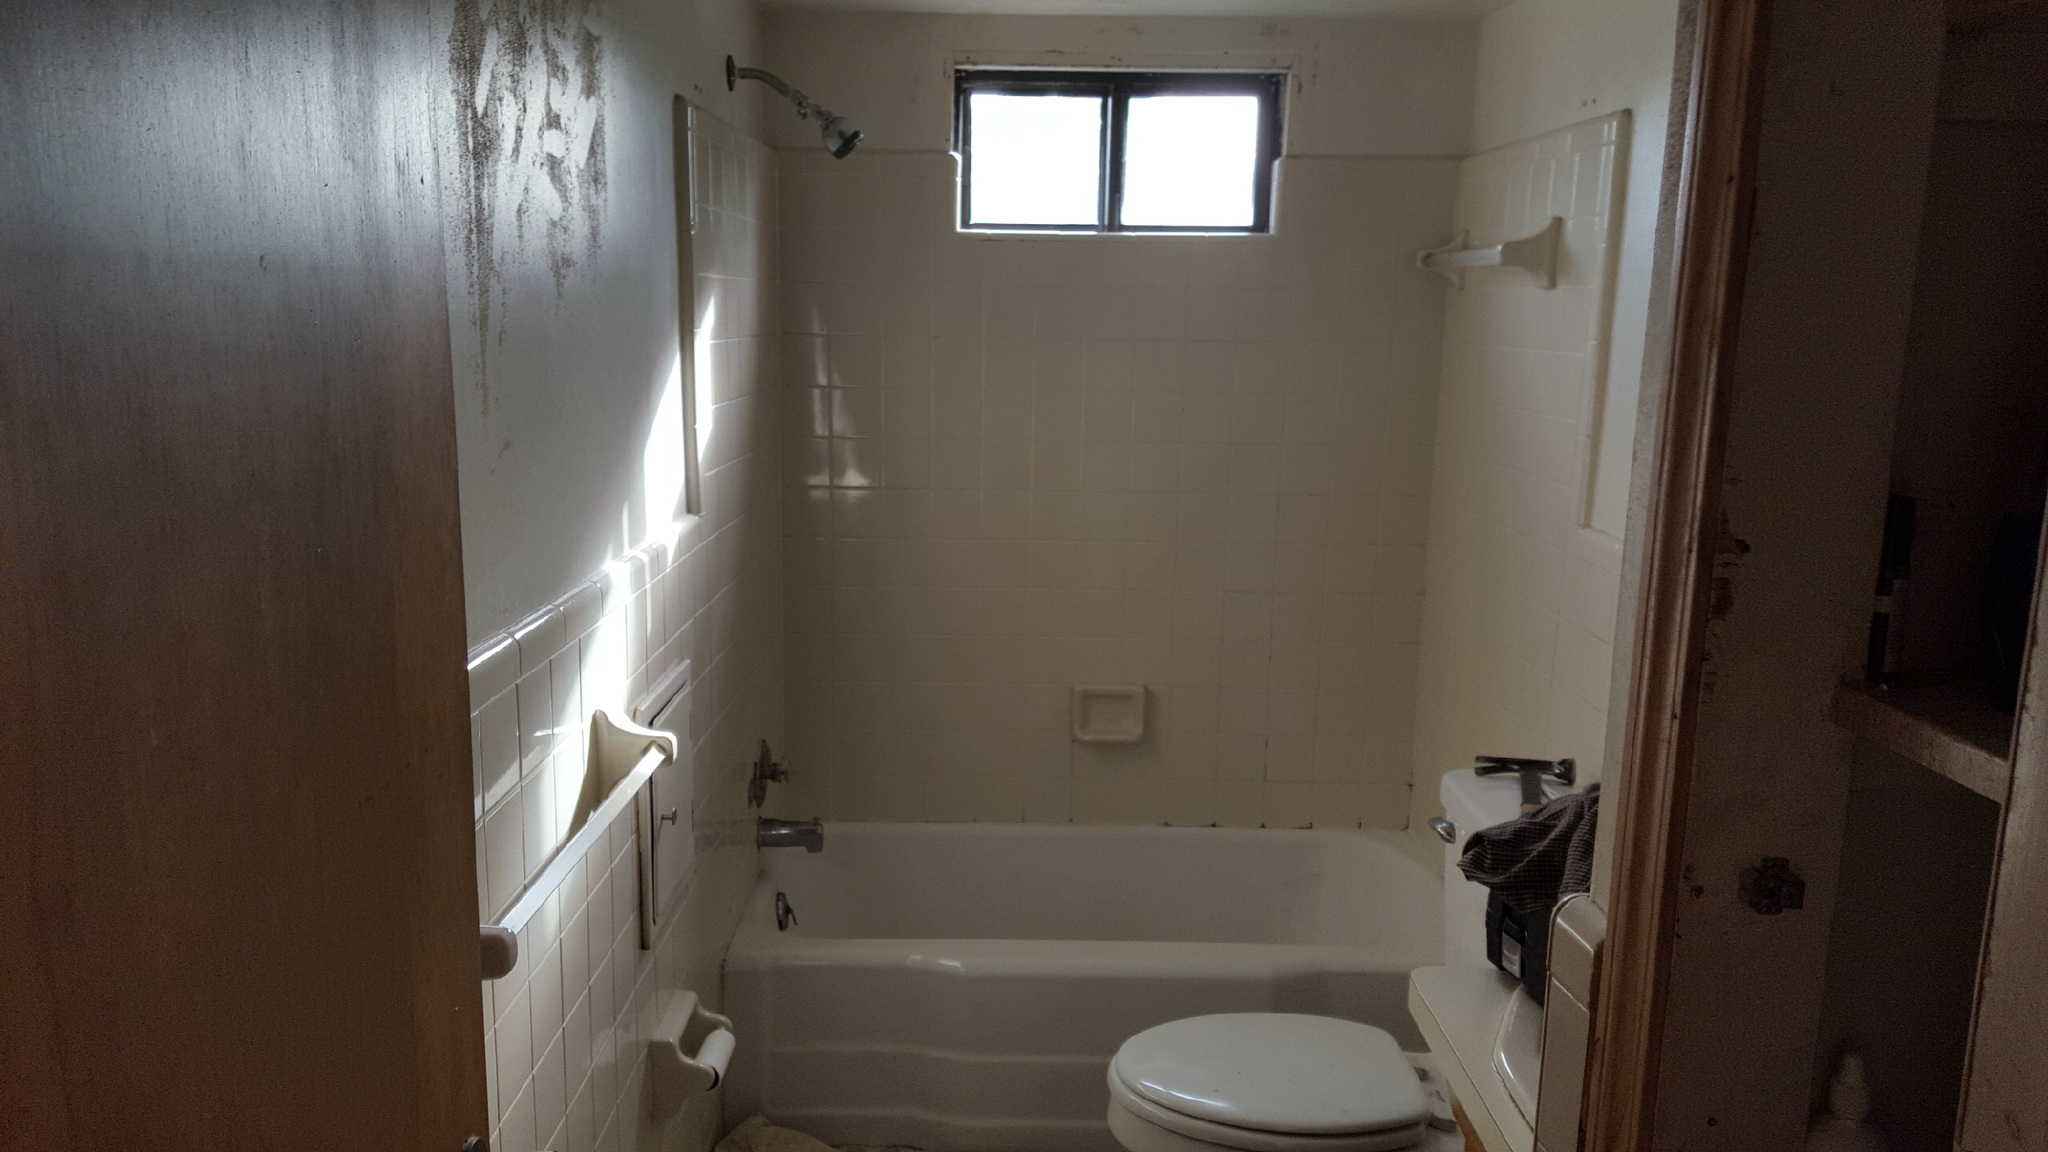 Tub and Surrounding Walls Refinishing - 3 Coat System